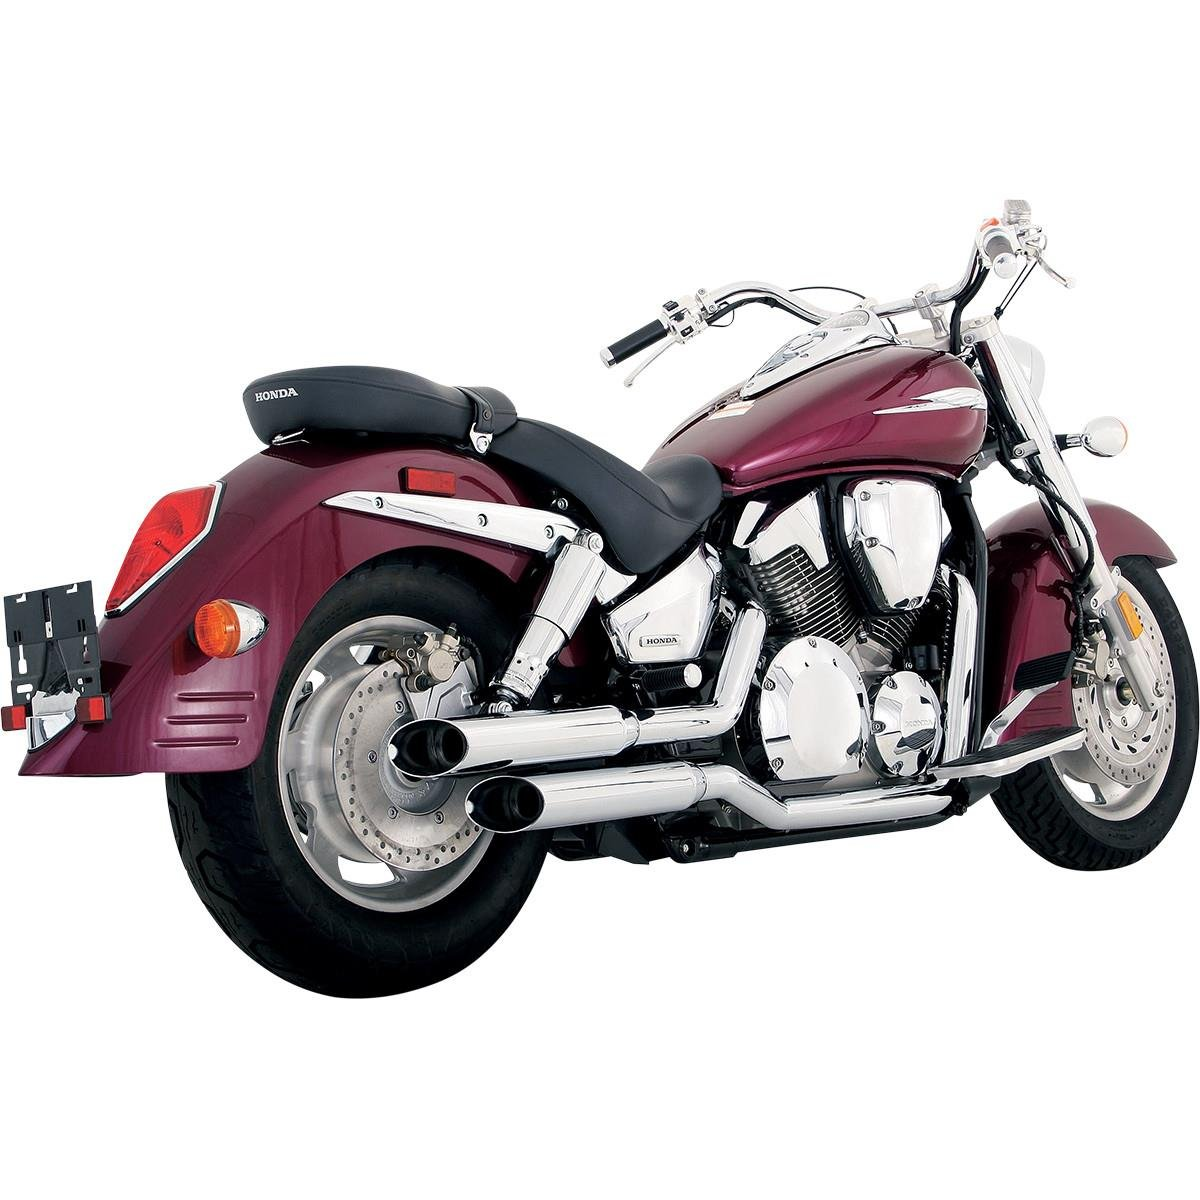 Vance and Hines Cruzers Full System Exhaust for Honda 2003-09 VTX1300 models - One Size